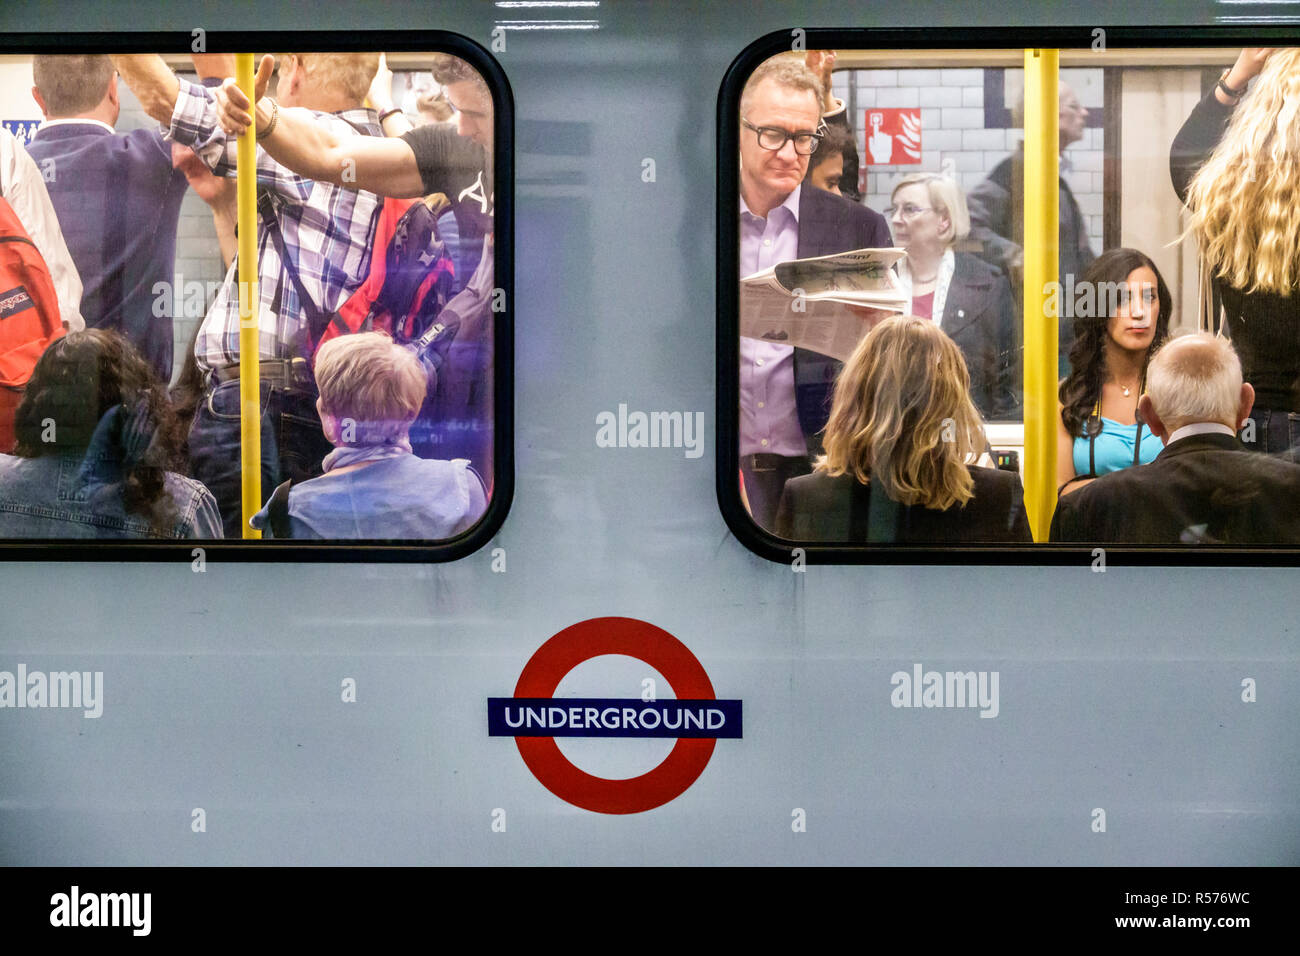 United Kingdom Great Britain England London Westminster St. James's Park Underground Station tube subway public transportation platform crowded train - Stock Image